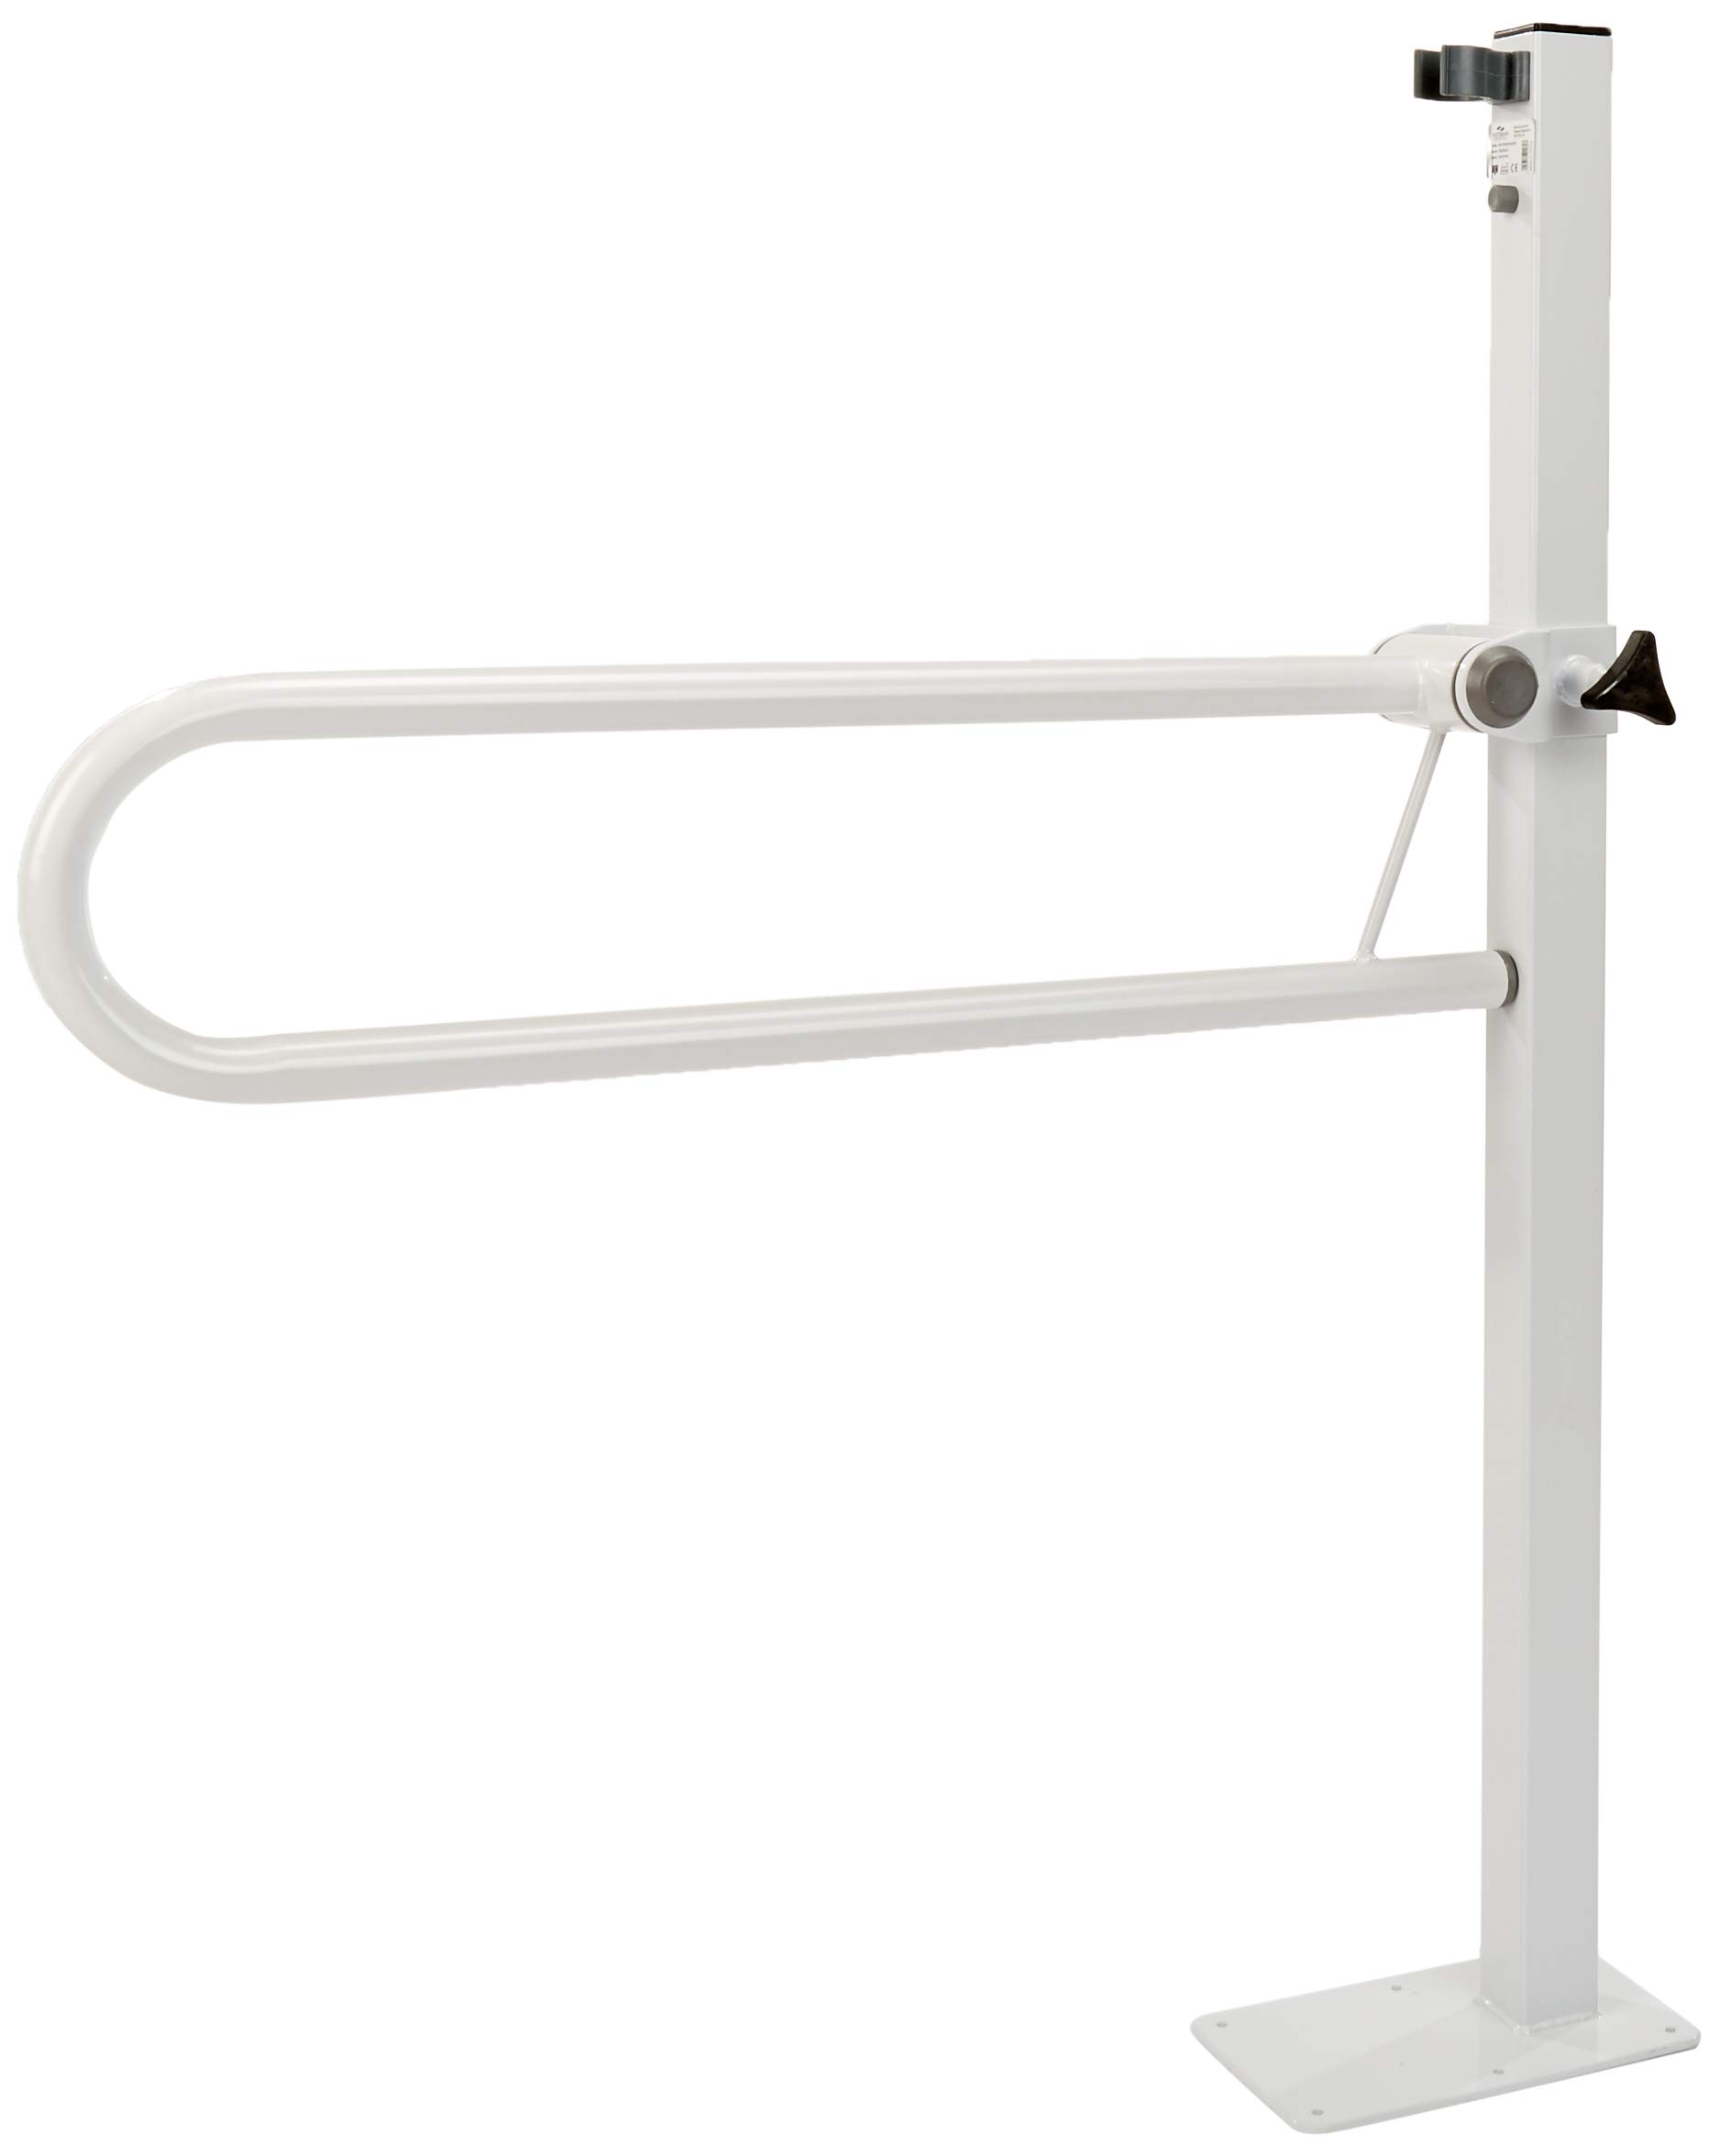 Homecraft Devon Floor-Mounted Folding Rail, Bathroom Aid for Elderly, Handicapped, Disabled users, Bathroom Grab Bar for Stability and Control, Safety Support Handrail for Lavatory and Bathroom